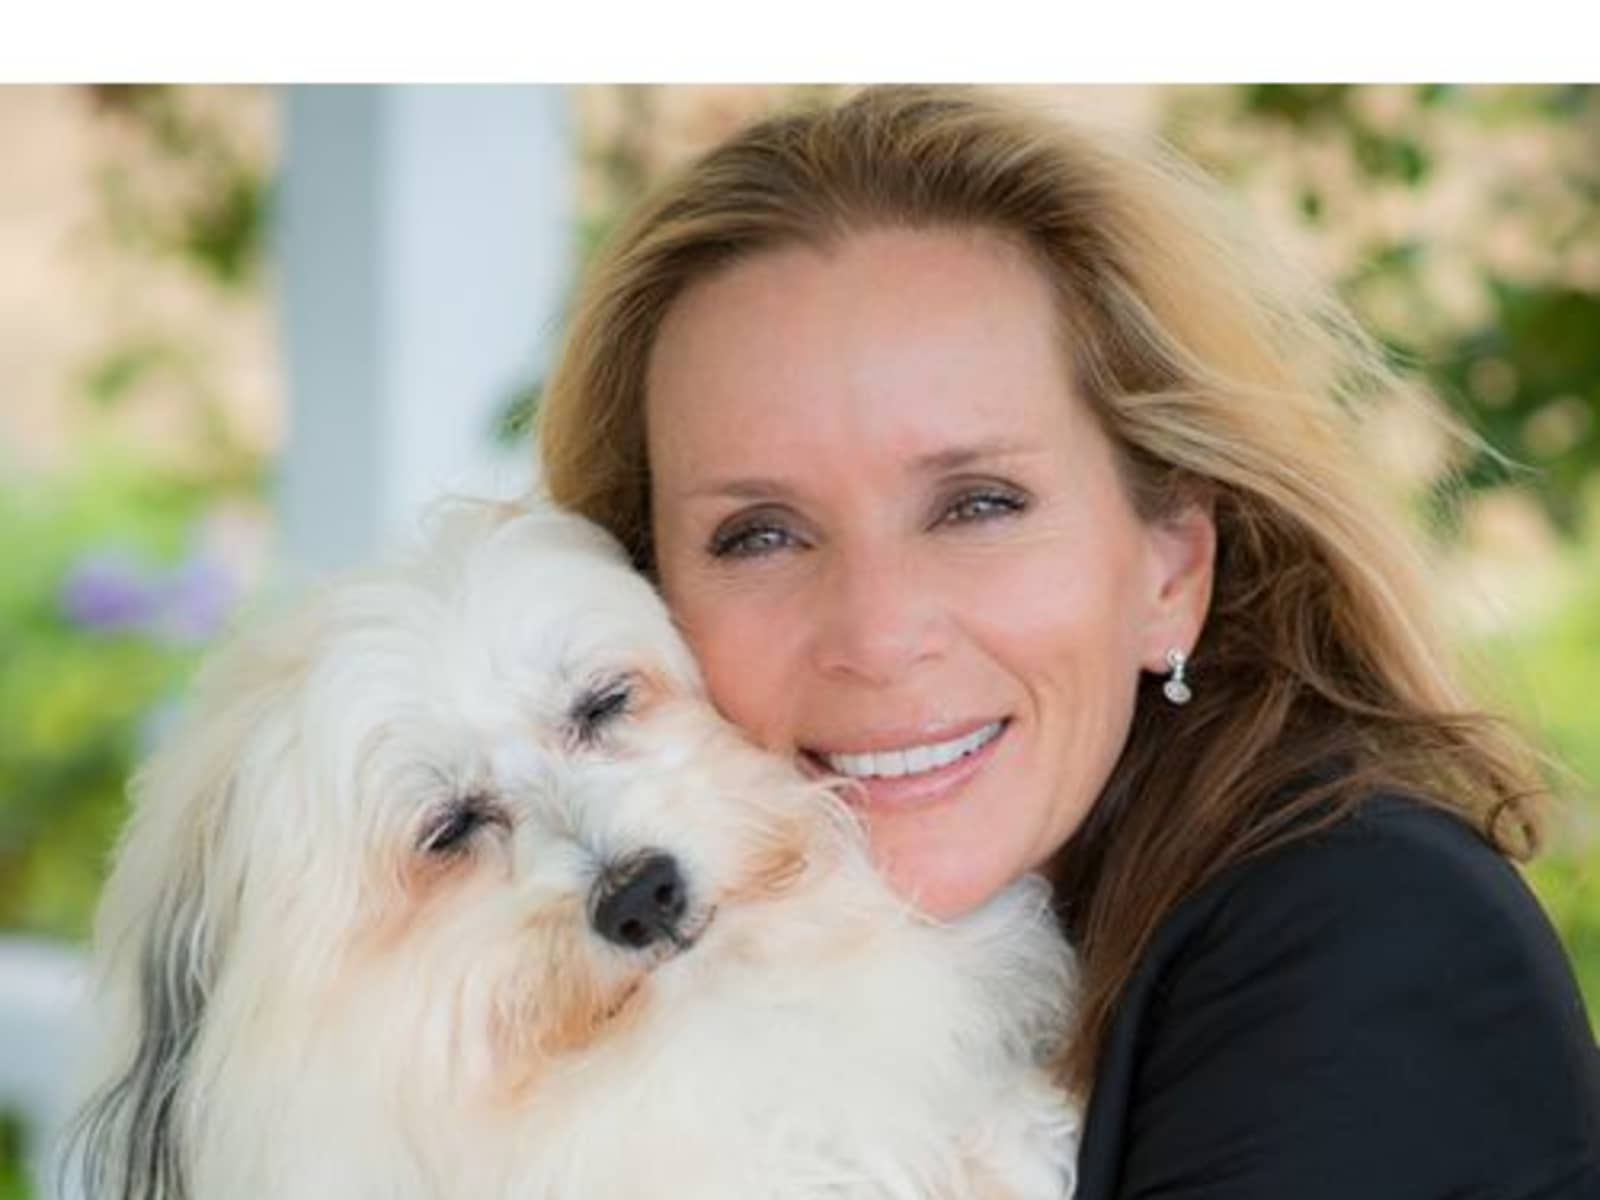 Brigitte from Malibu, California, United States